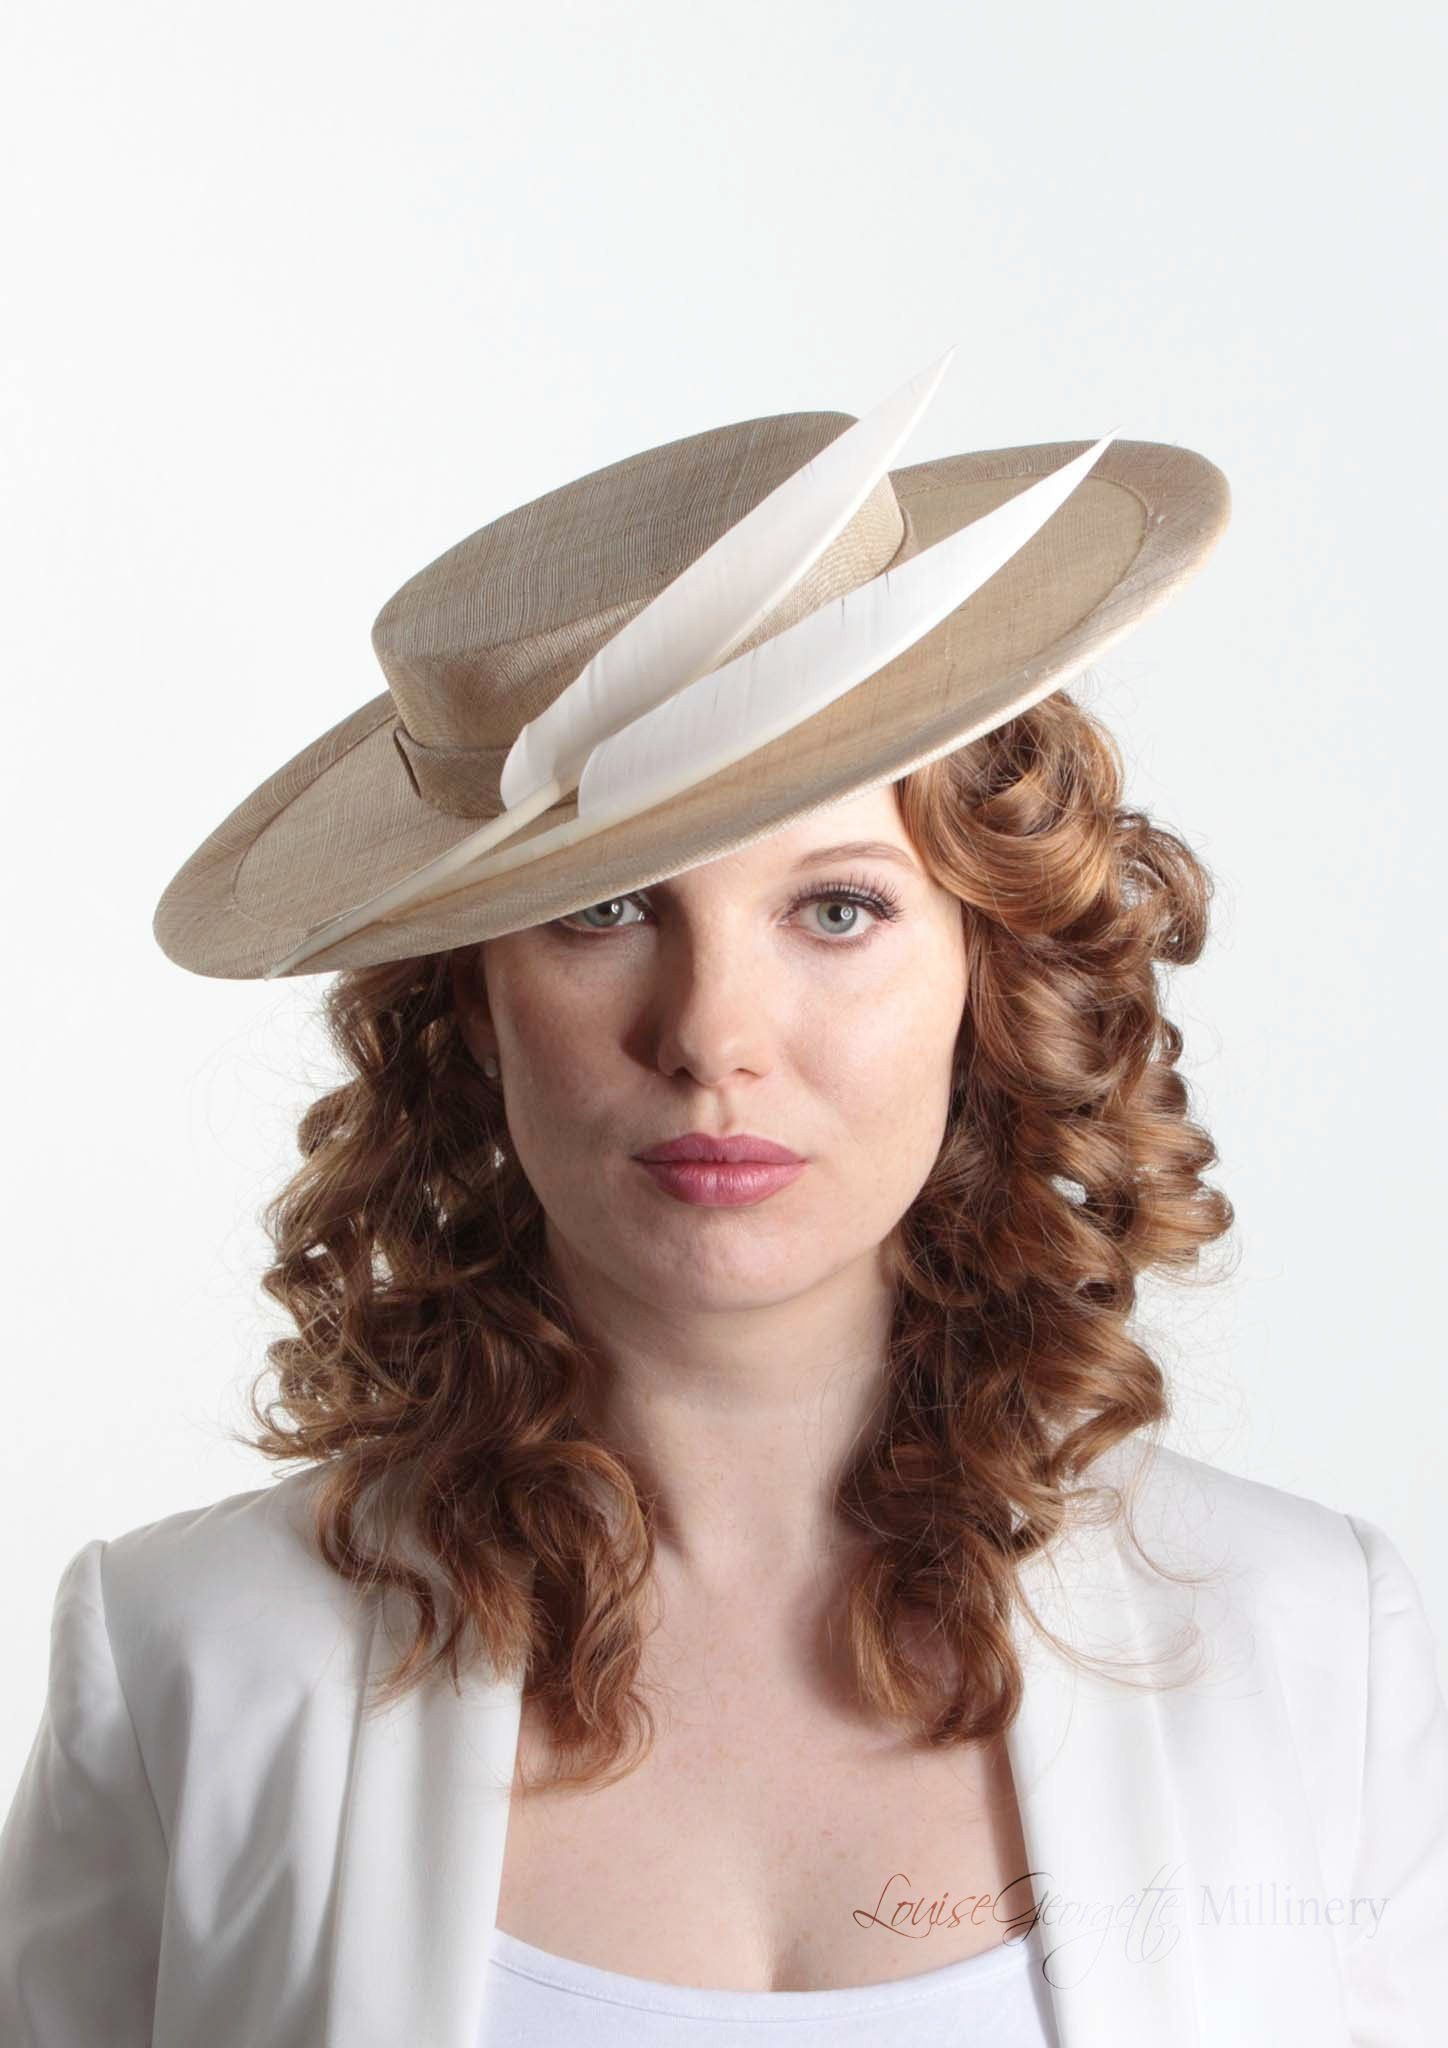 f1ed24a843a98 Harper in 2019 | Hats | Boater hat, Hats, Special occasion outfits